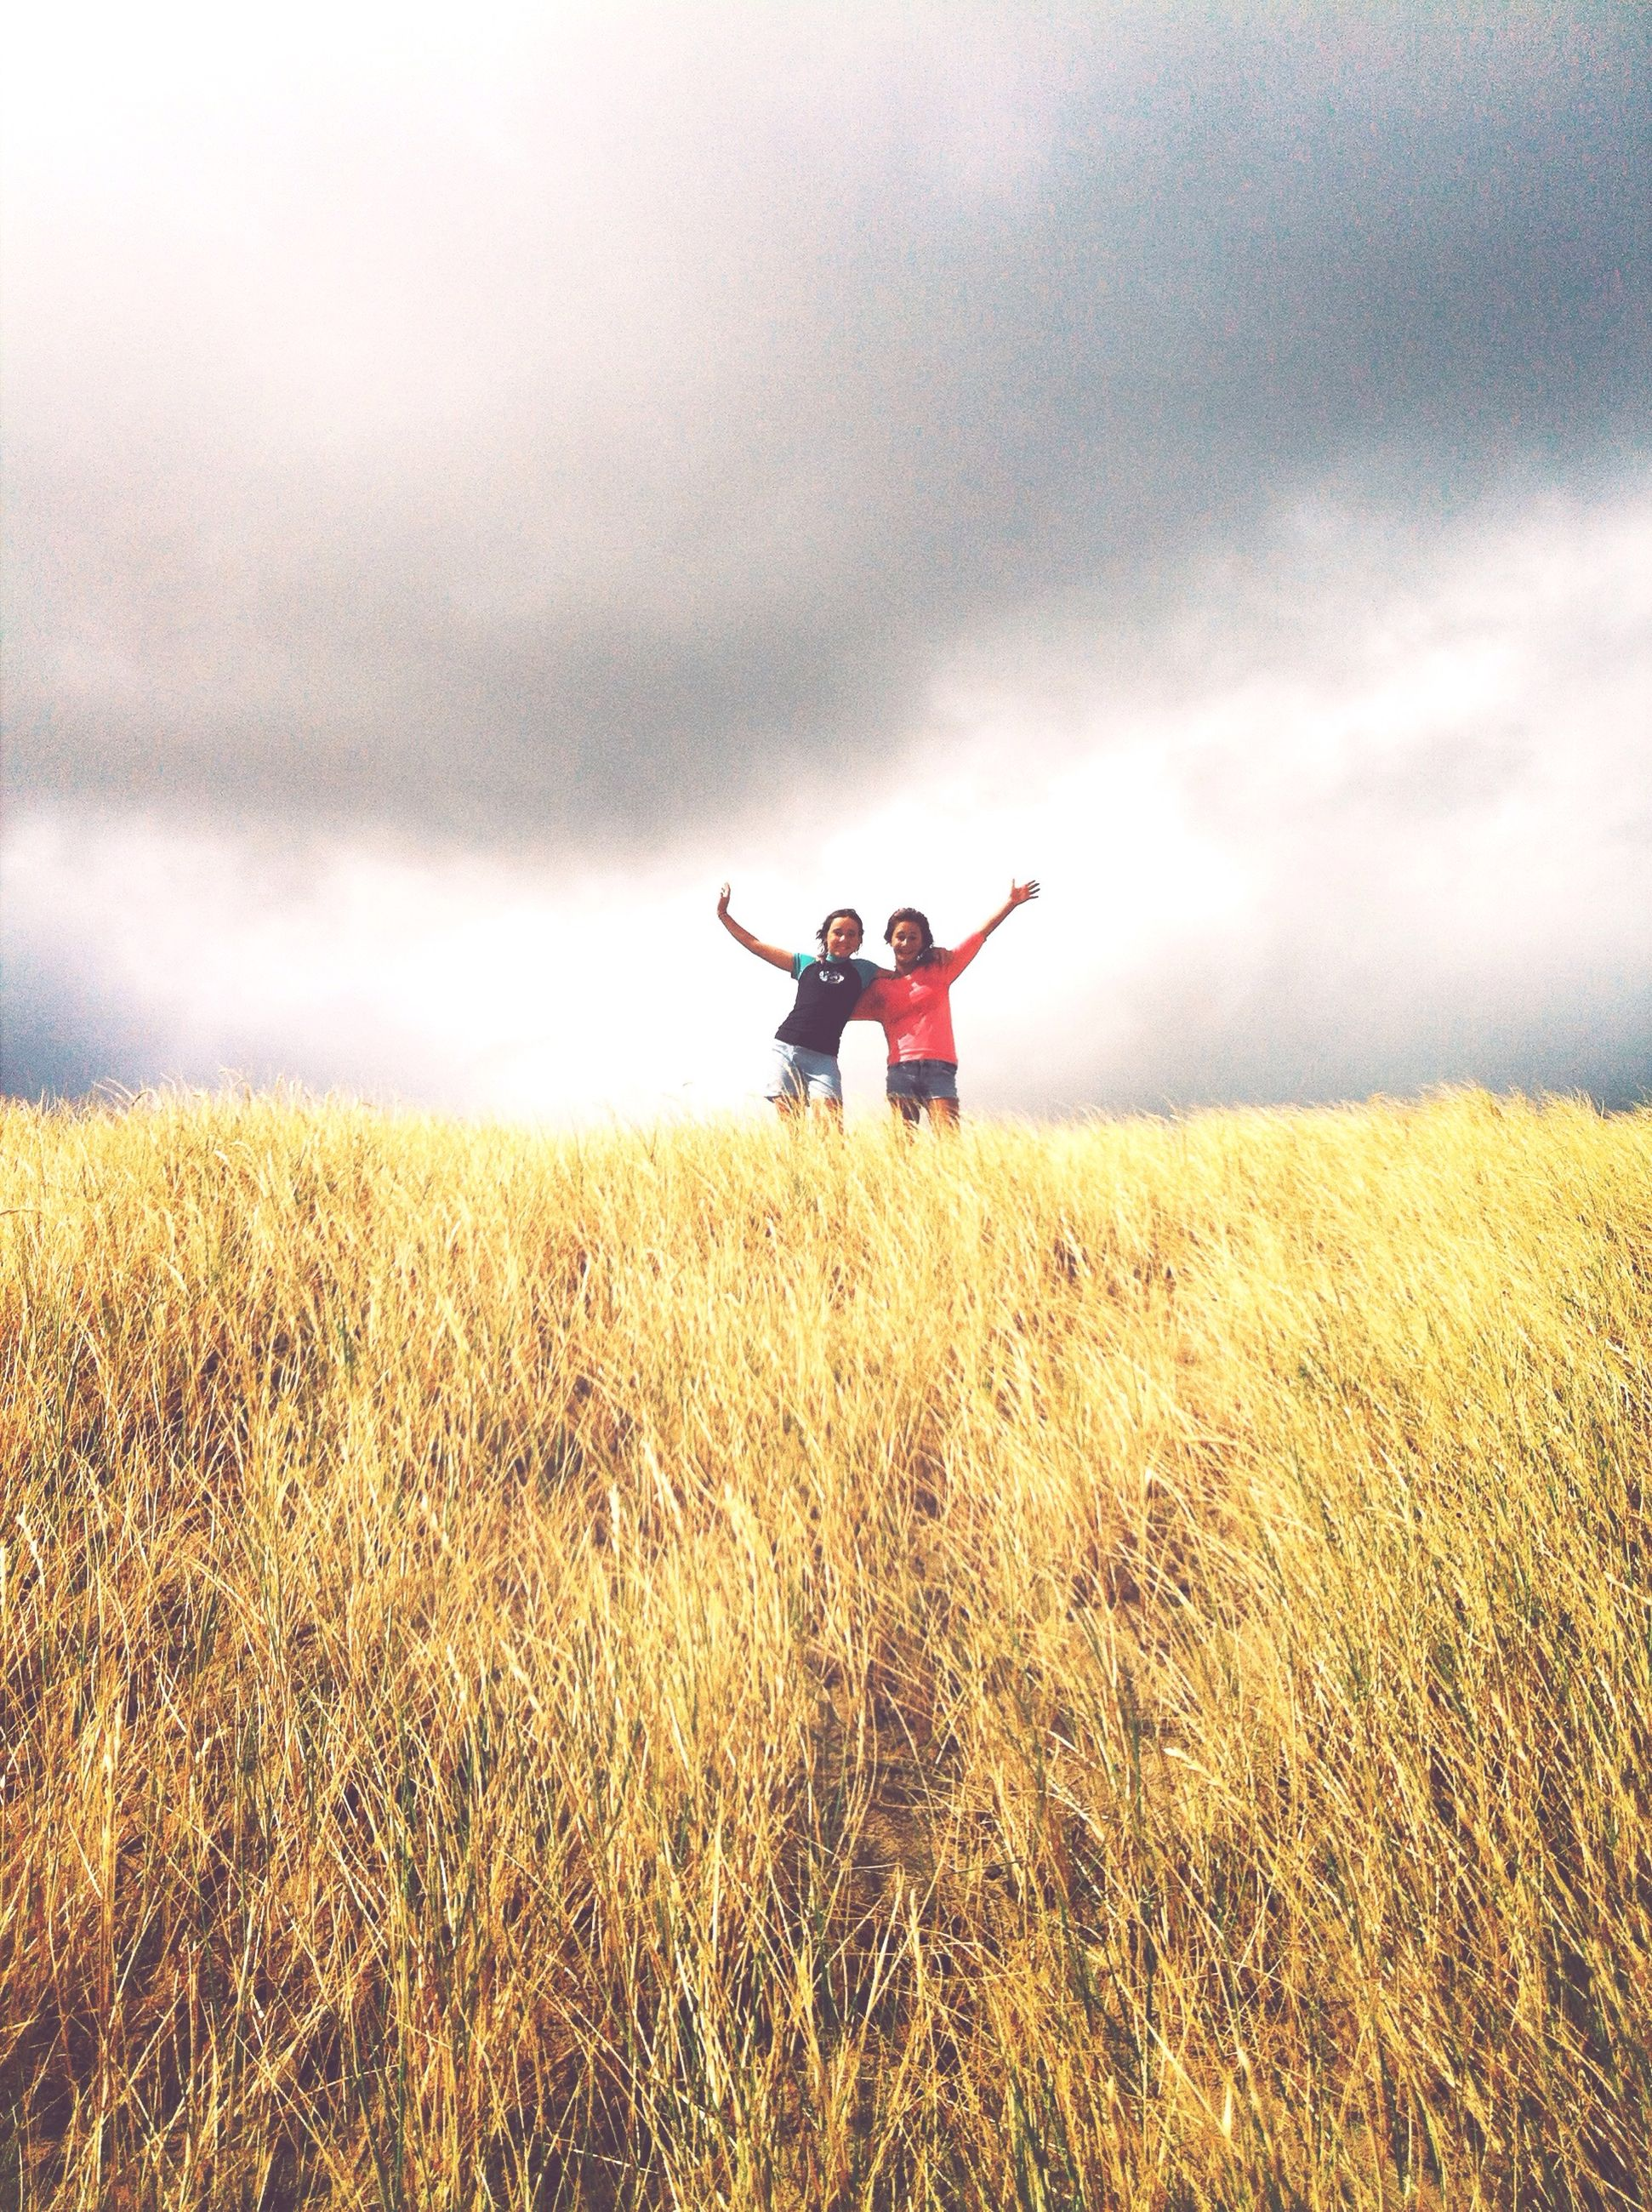 sky, lifestyles, cloud - sky, field, leisure activity, cloudy, full length, landscape, grass, cloud, tranquil scene, men, grassy, nature, tranquility, overcast, scenics, beauty in nature